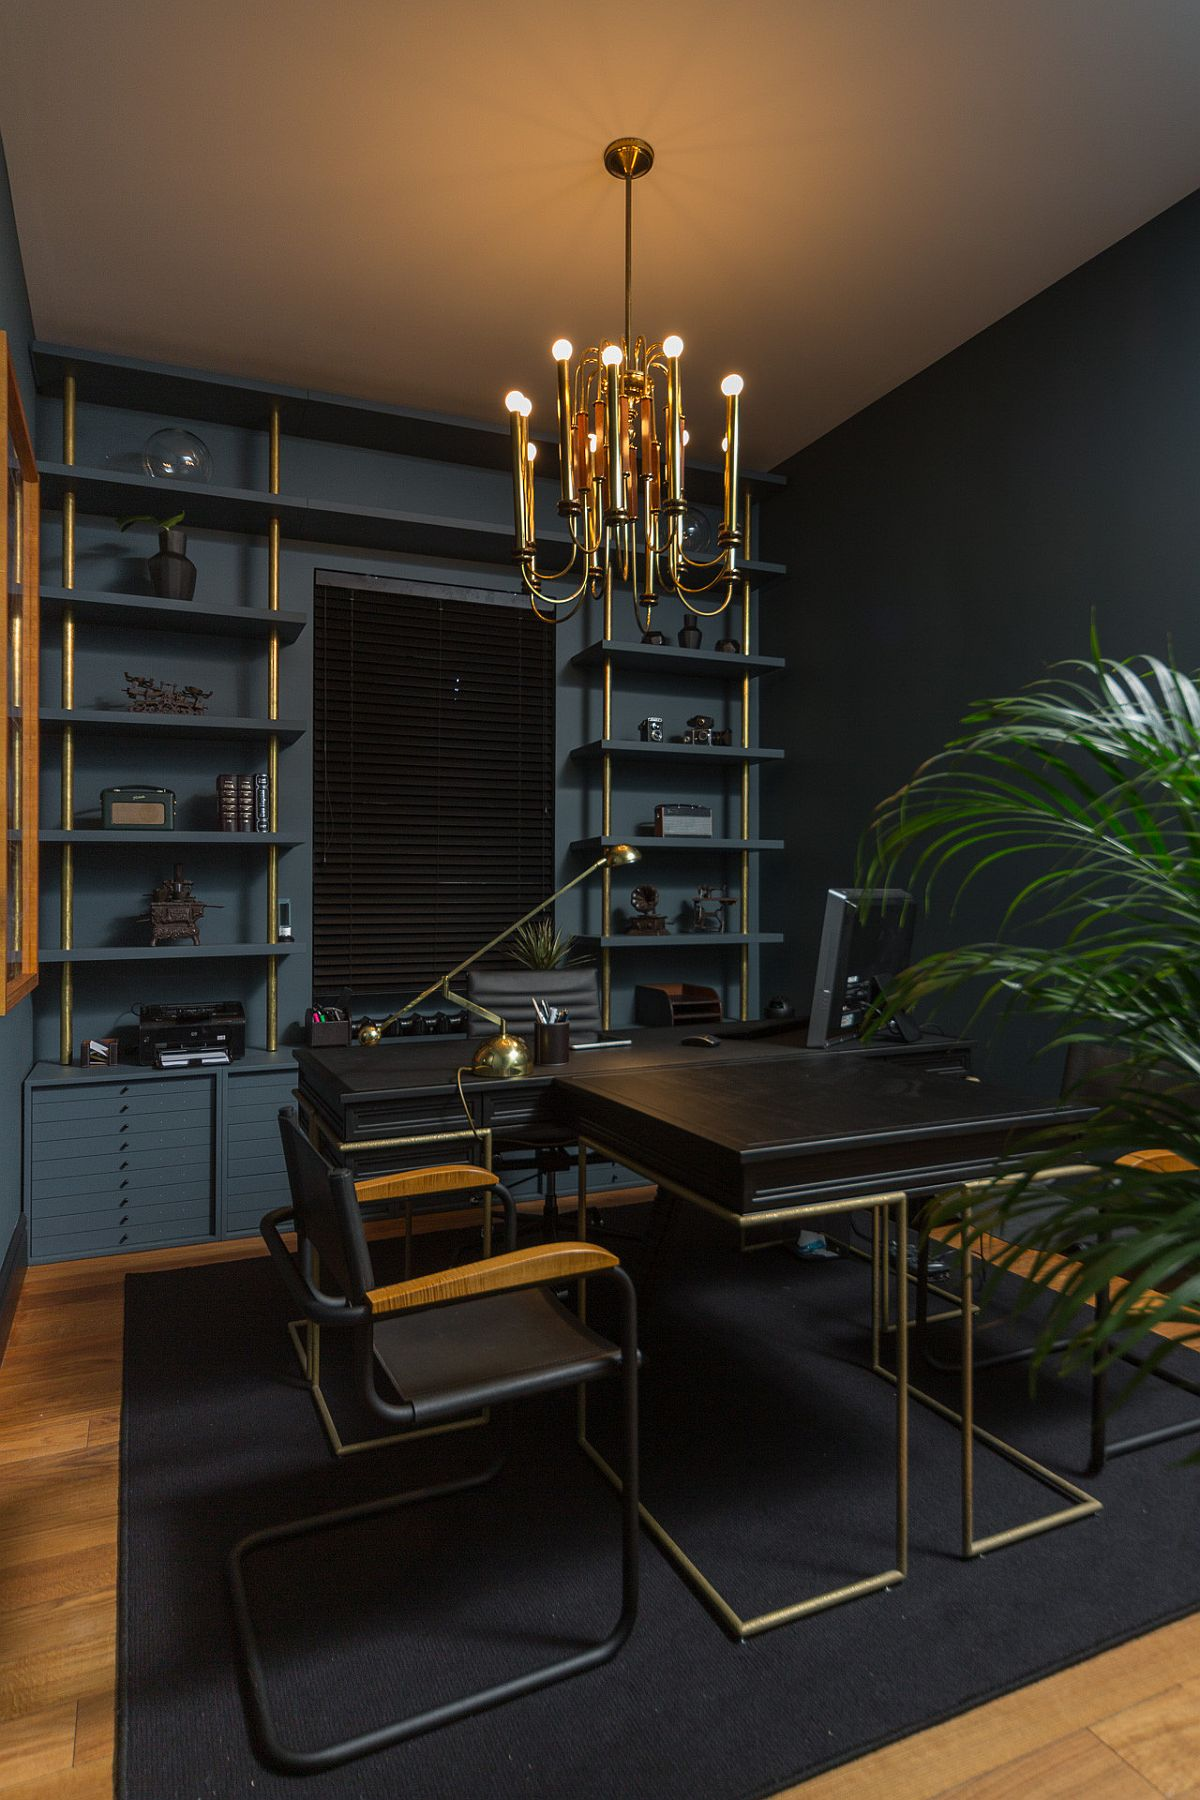 Black-and-dark-blue-walls-in-the-home-office-usher-in-an-air-of-urbane-elegance-30869